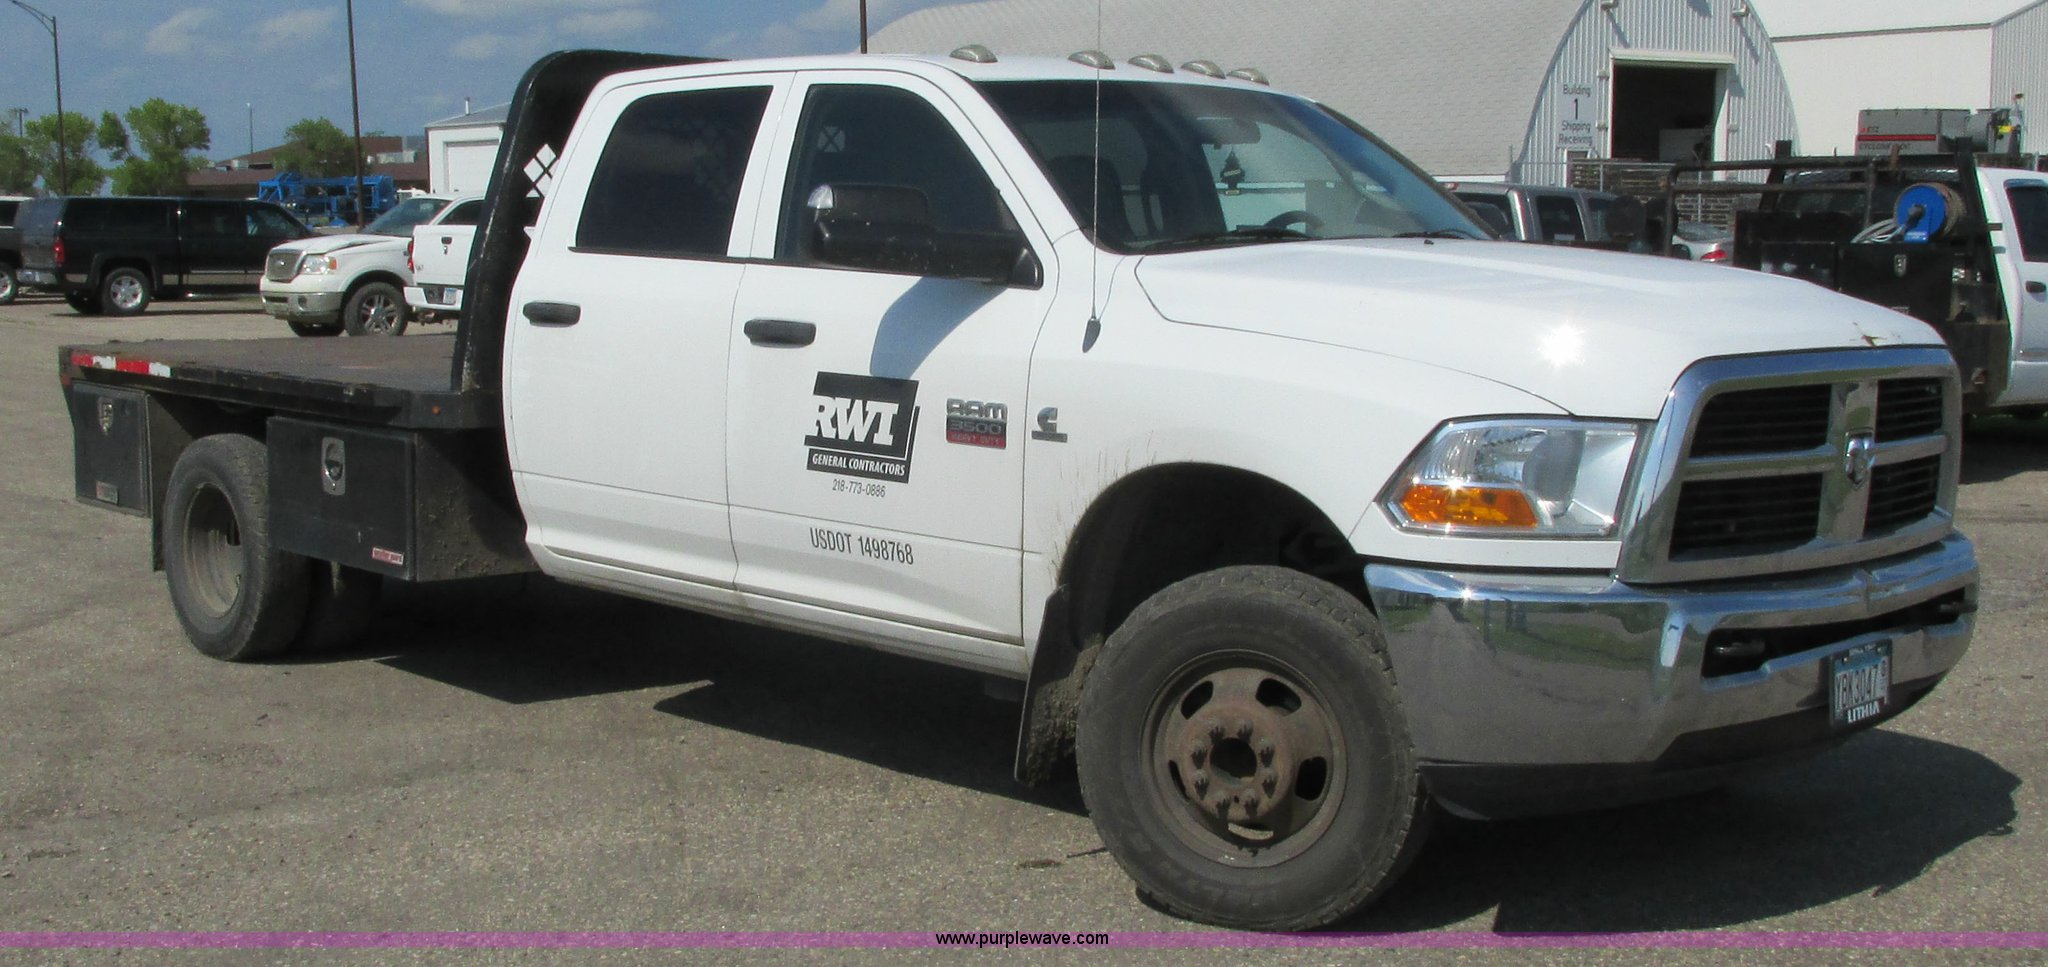 2011 Dodge Ram 3500 Crew Cab Flatbed Pickup Truck Item L26 Wiring Full Size In New Window